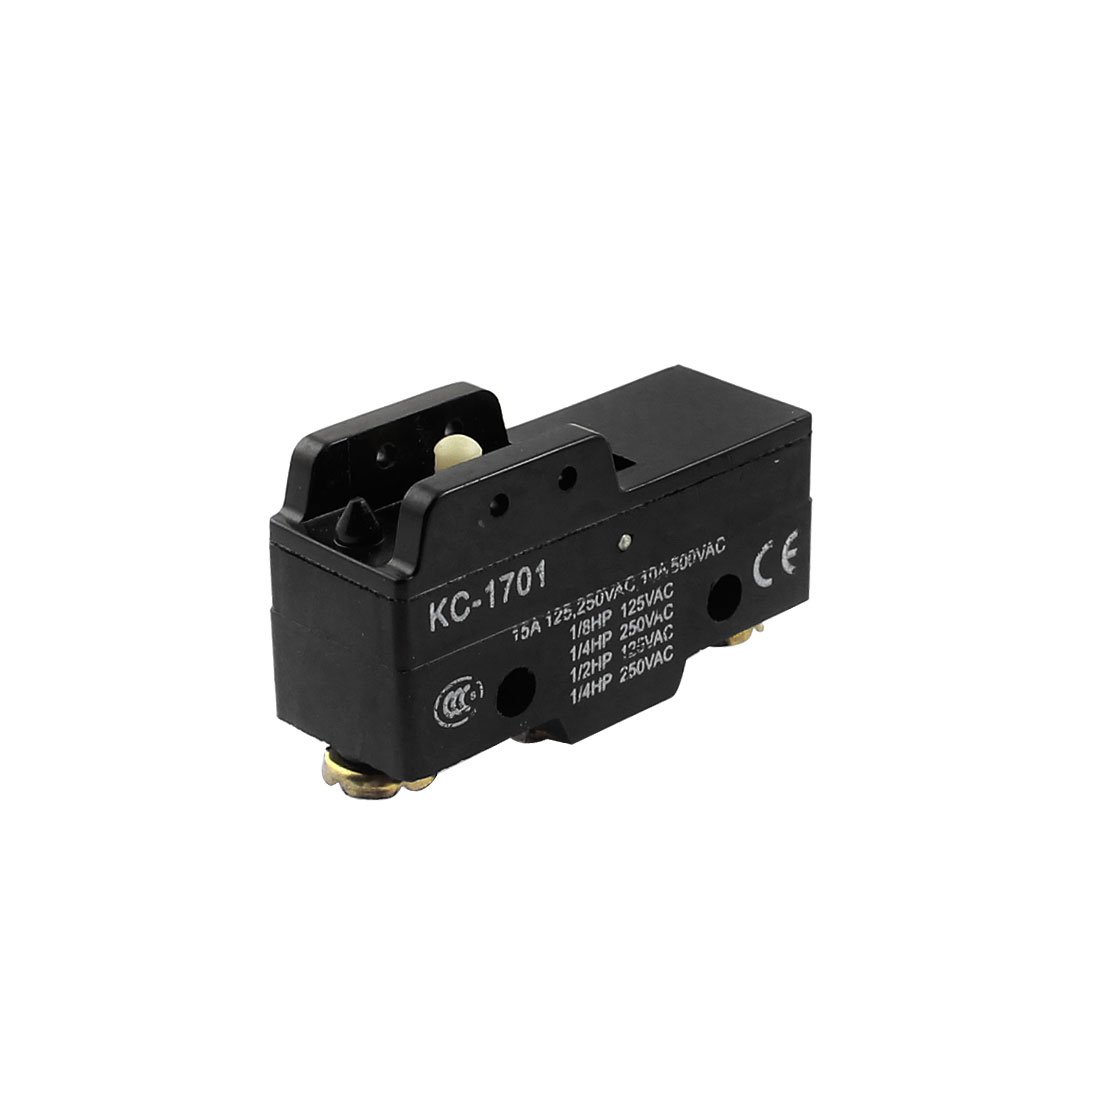 KC-1701 AC 125V/250V/500V 15A/10A SPDT 1NO+1NC 3 Screw Terminal Momentary Push Button Type Black Mini Limit Switch